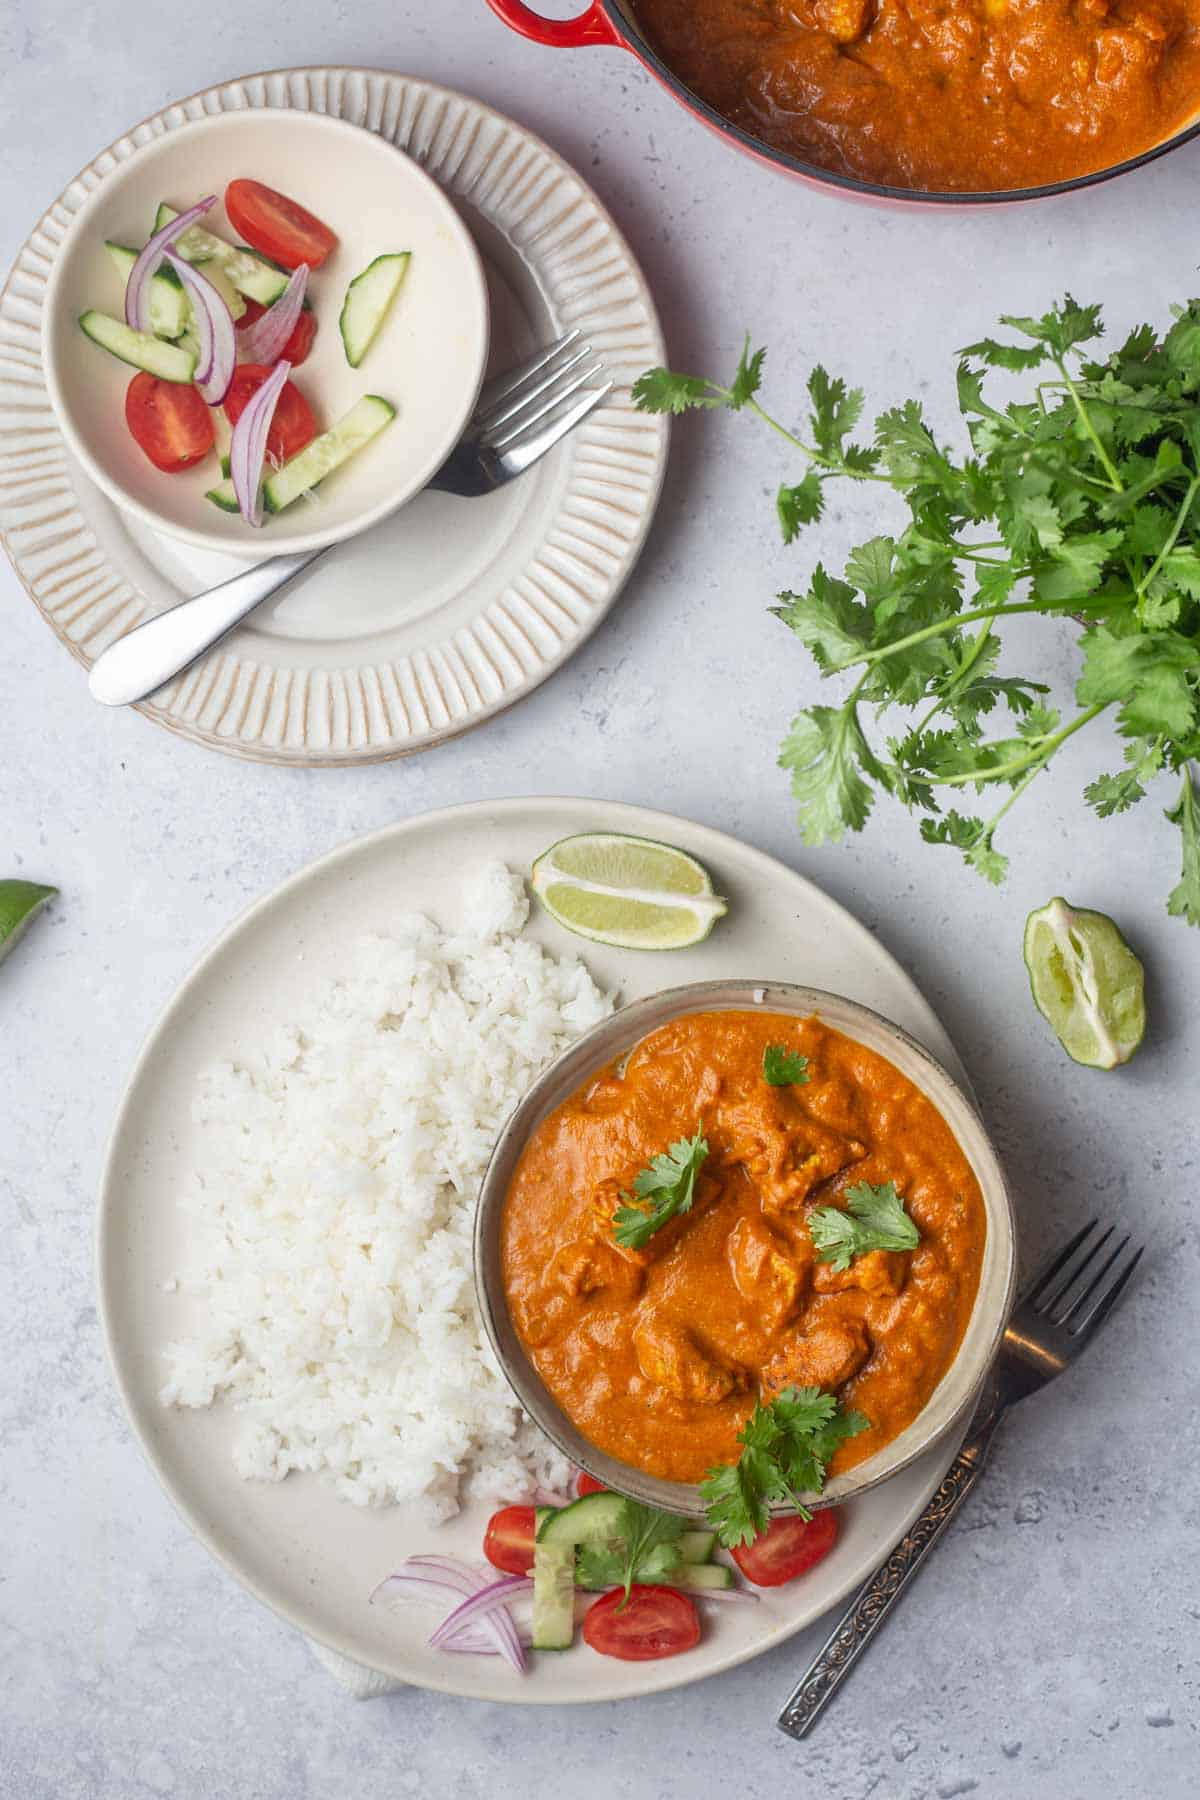 Overhead view of a bowl of butter chicken with a plate of rice beside it with a small bowl of garnish nearby.